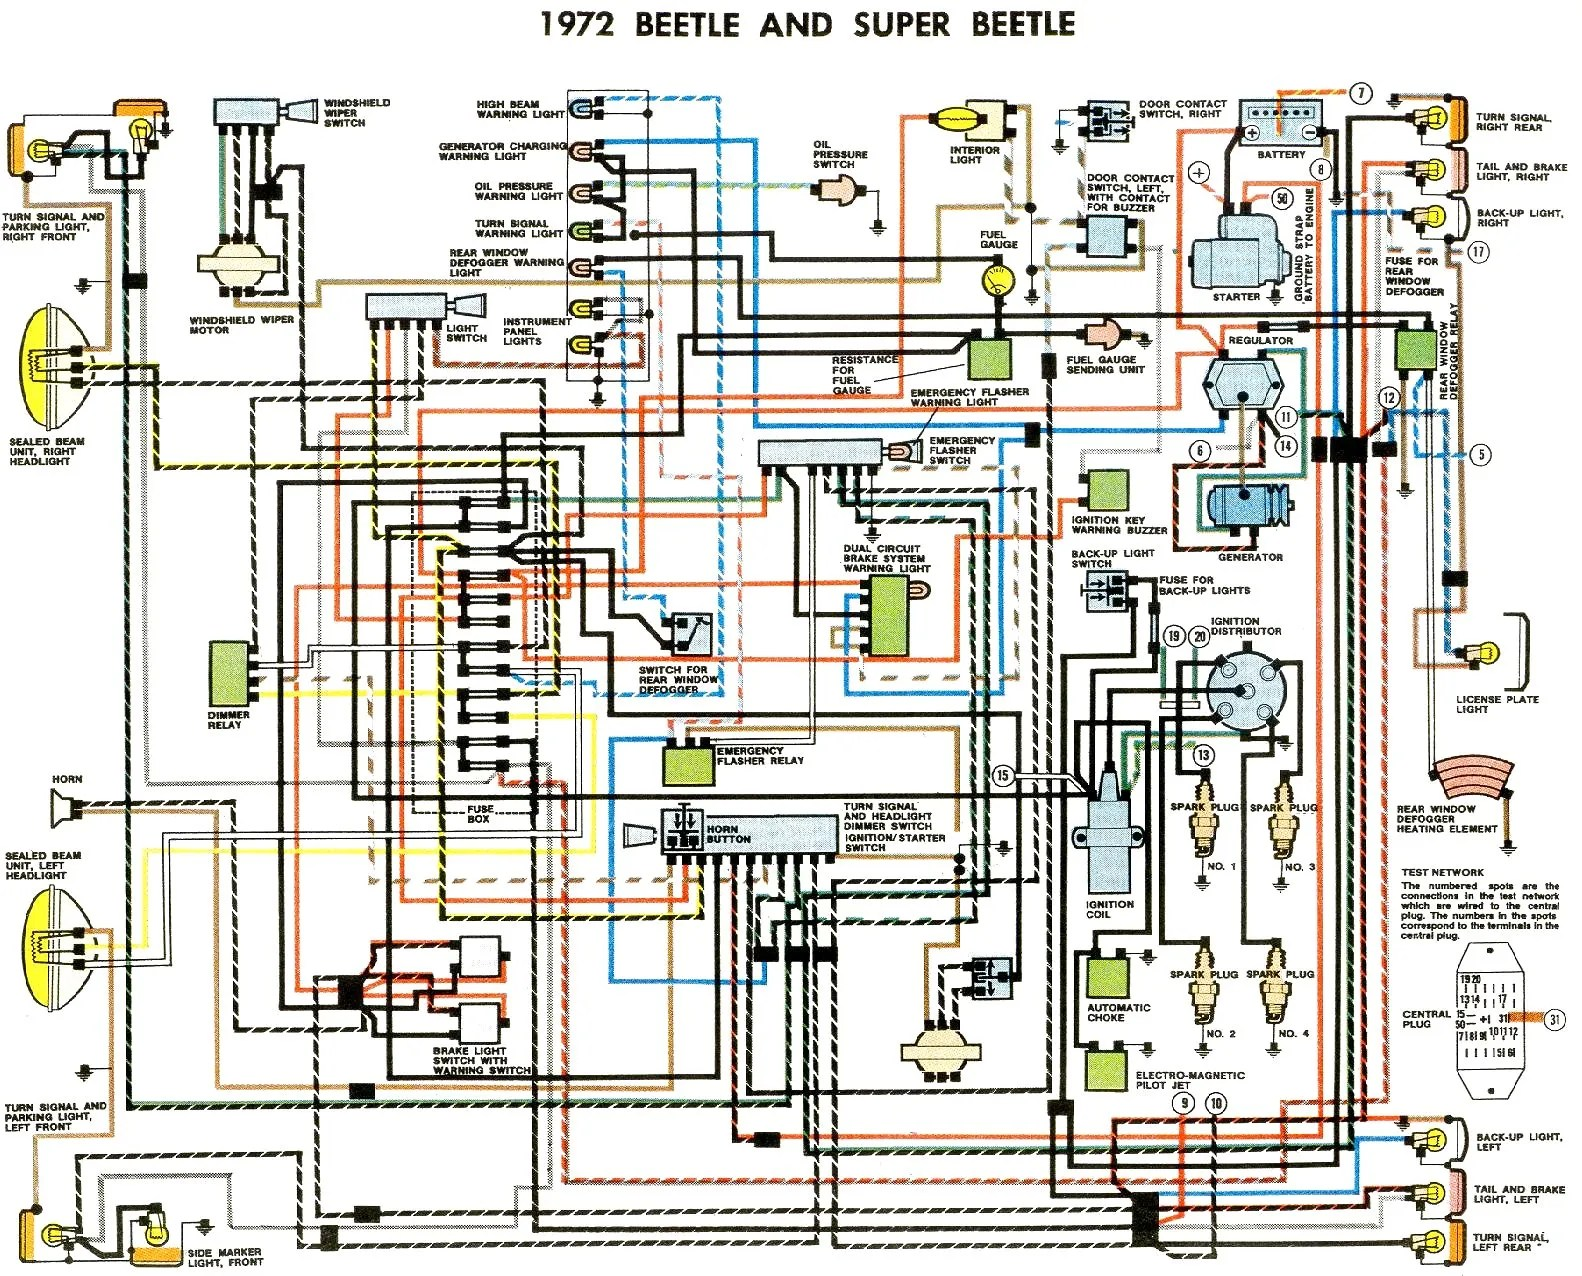 hight resolution of wiring upb leviton diagram 35a001cfl wiring diagram blog wiring upb leviton diagram 35a001cfl